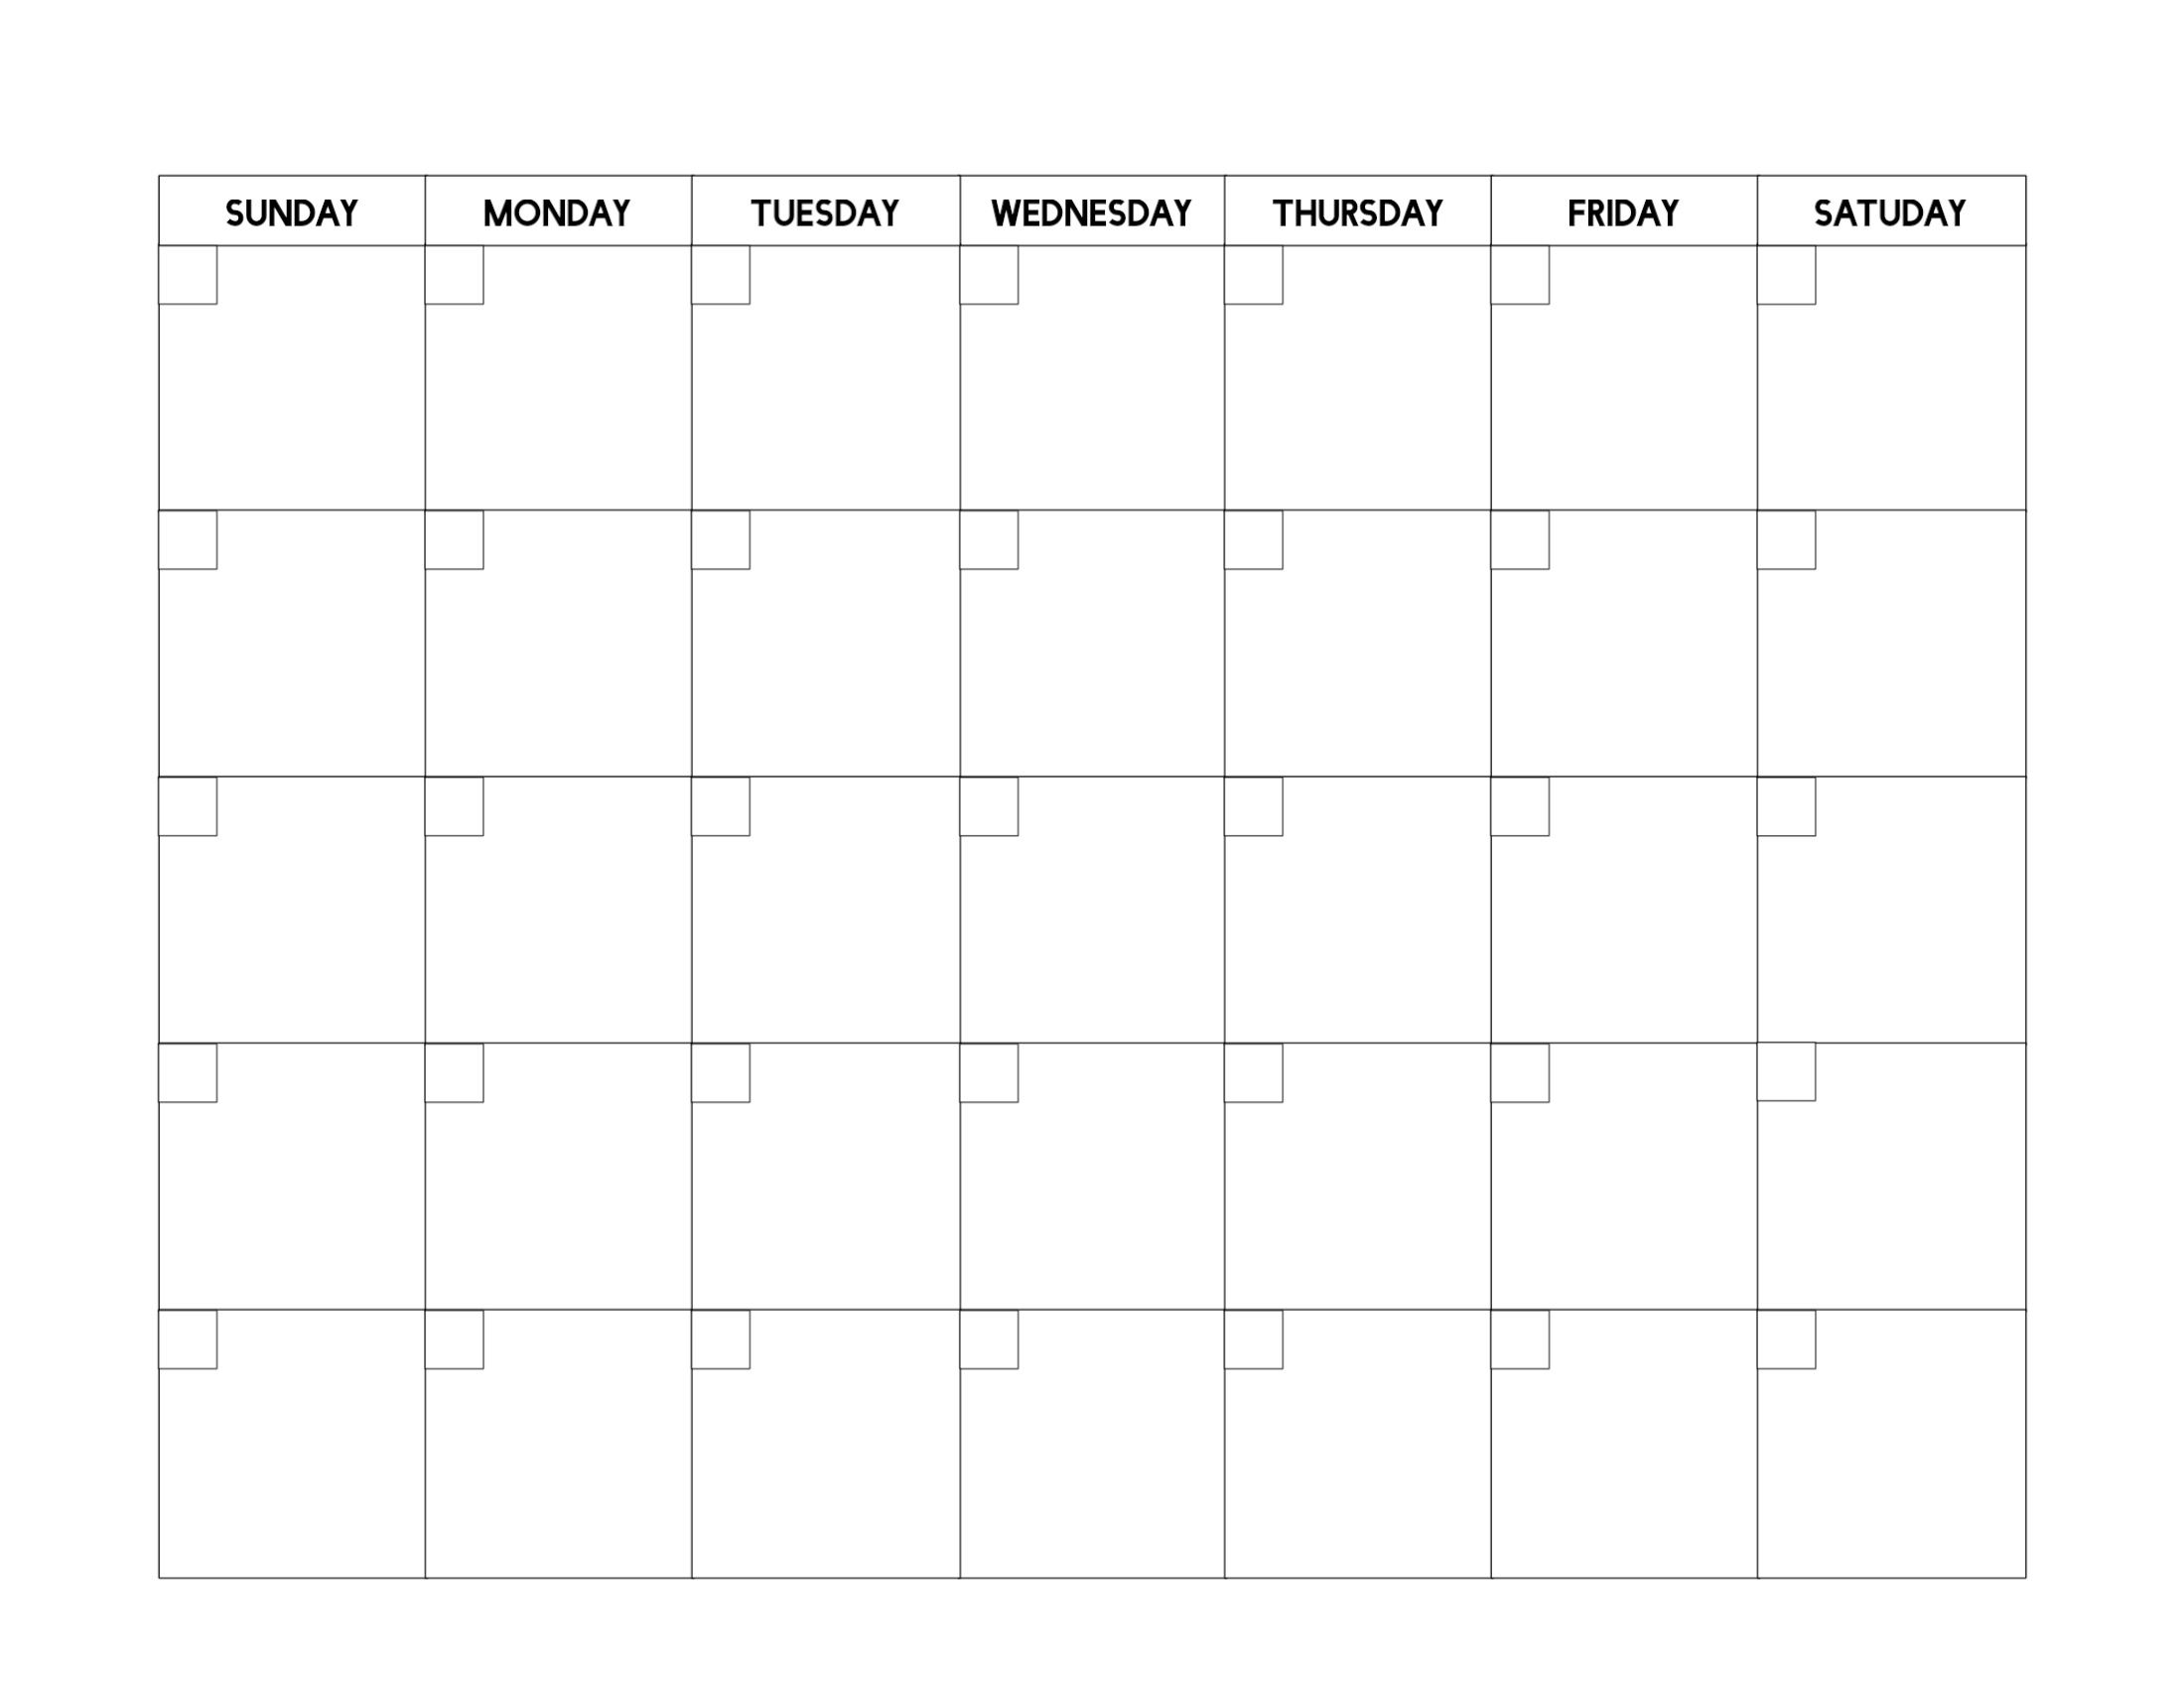 Free Printable Blank Calendar Template - Paper Trail Design-Blank Calendar Template No Dates